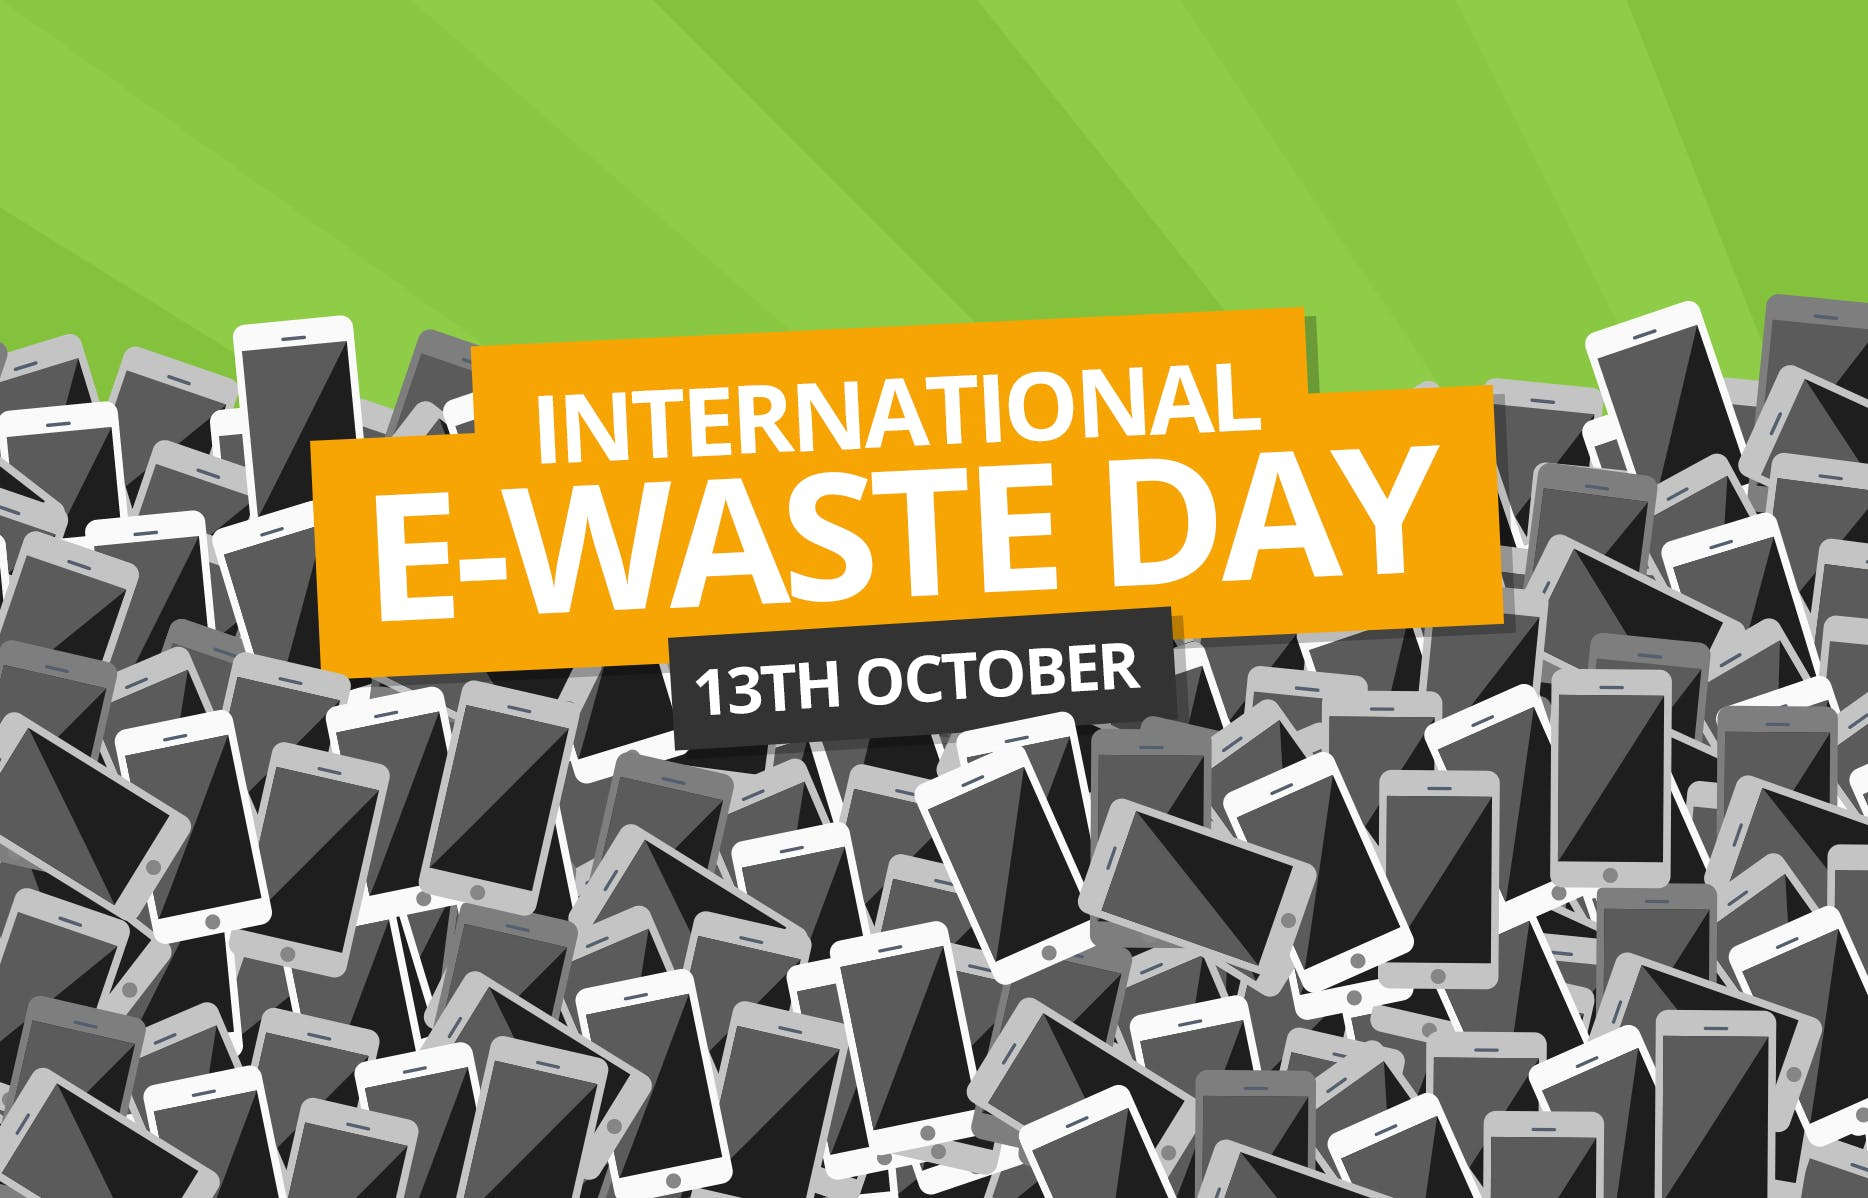 What Can You Do To Support International E-Waste Day?